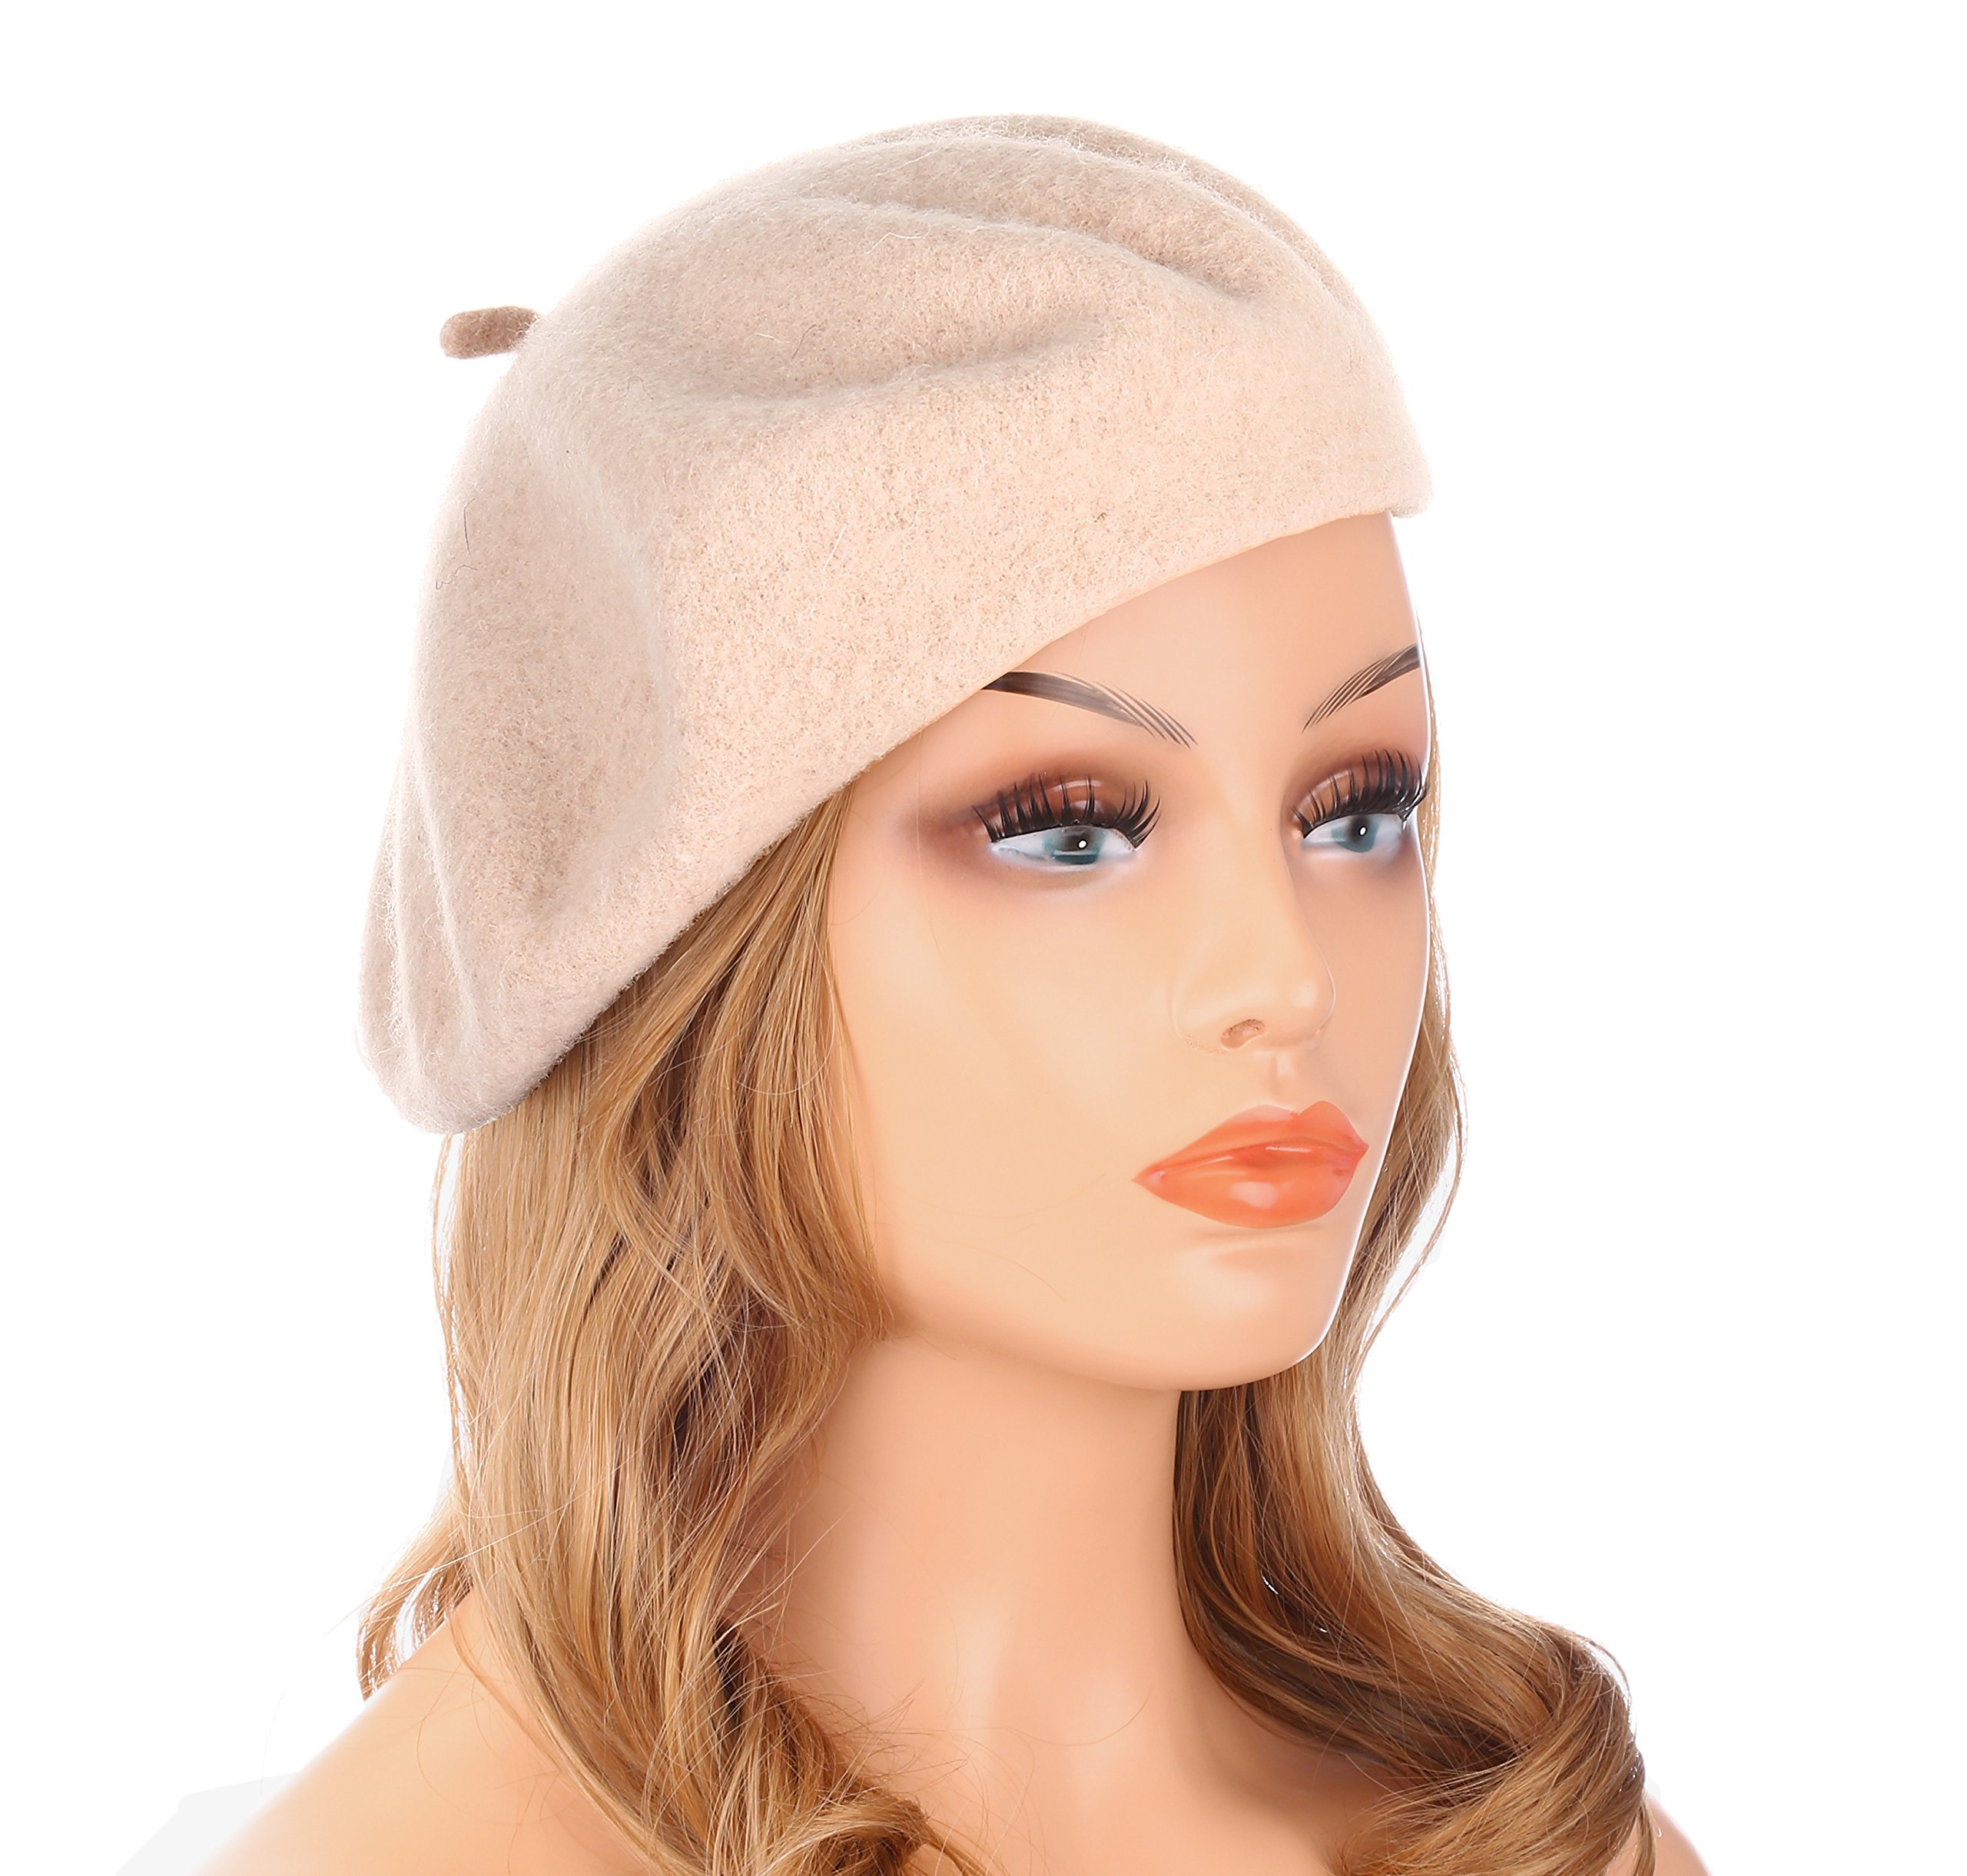 Wheebo Wool Beret Hat,Solid Color French Style Winter Warm Cap for Women Girls (Beige)